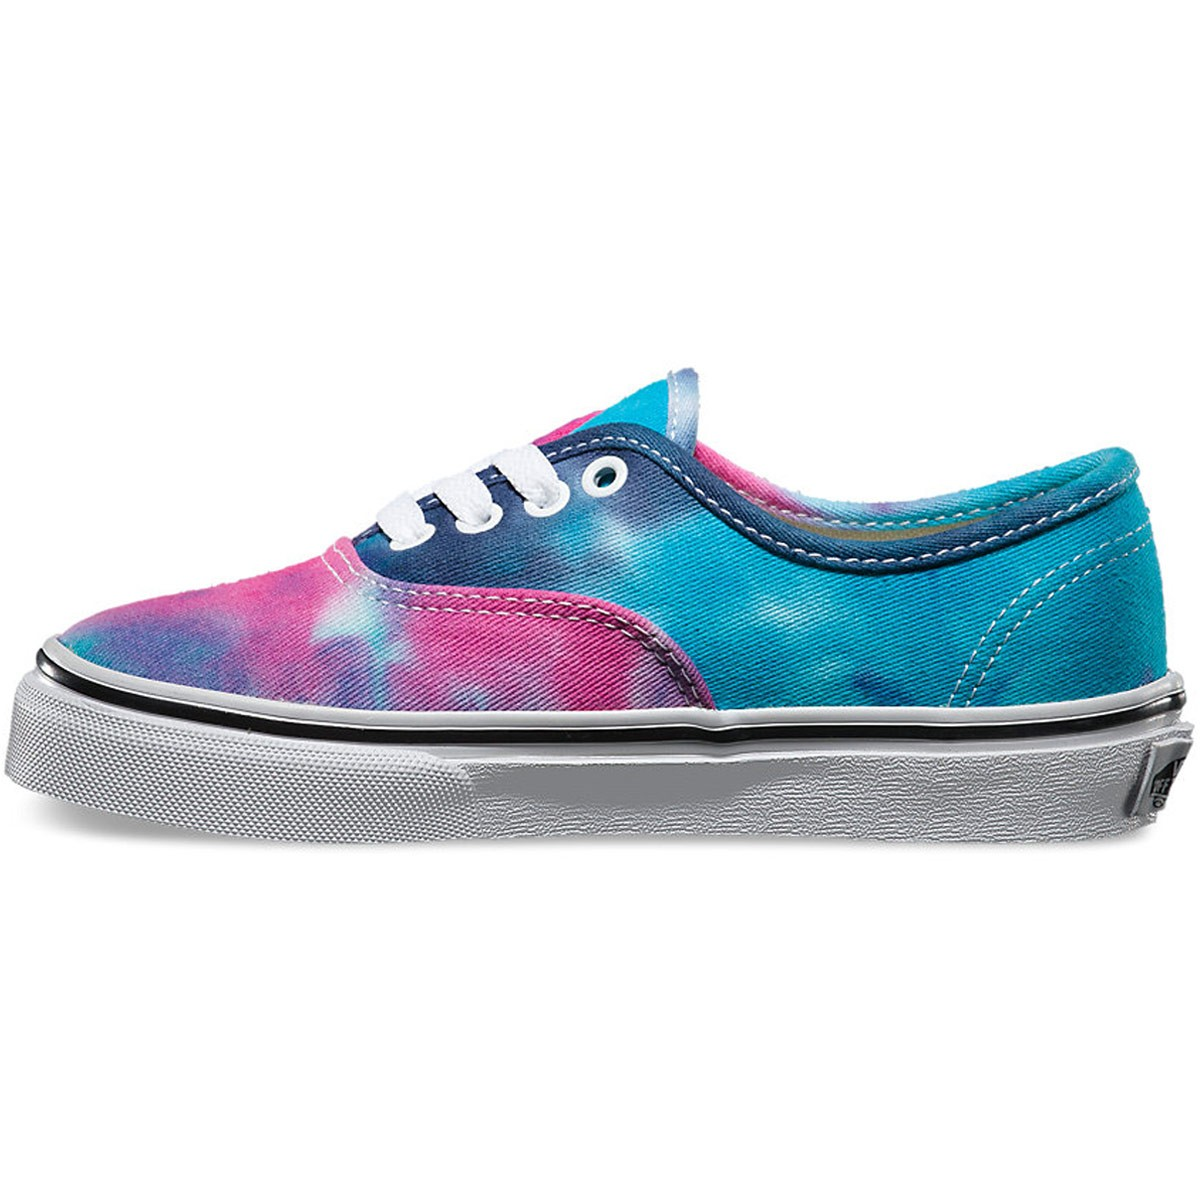 Vans Toddler Authentic Tie Dye Shoes - Pink Blue - 4Y 3ec781108b